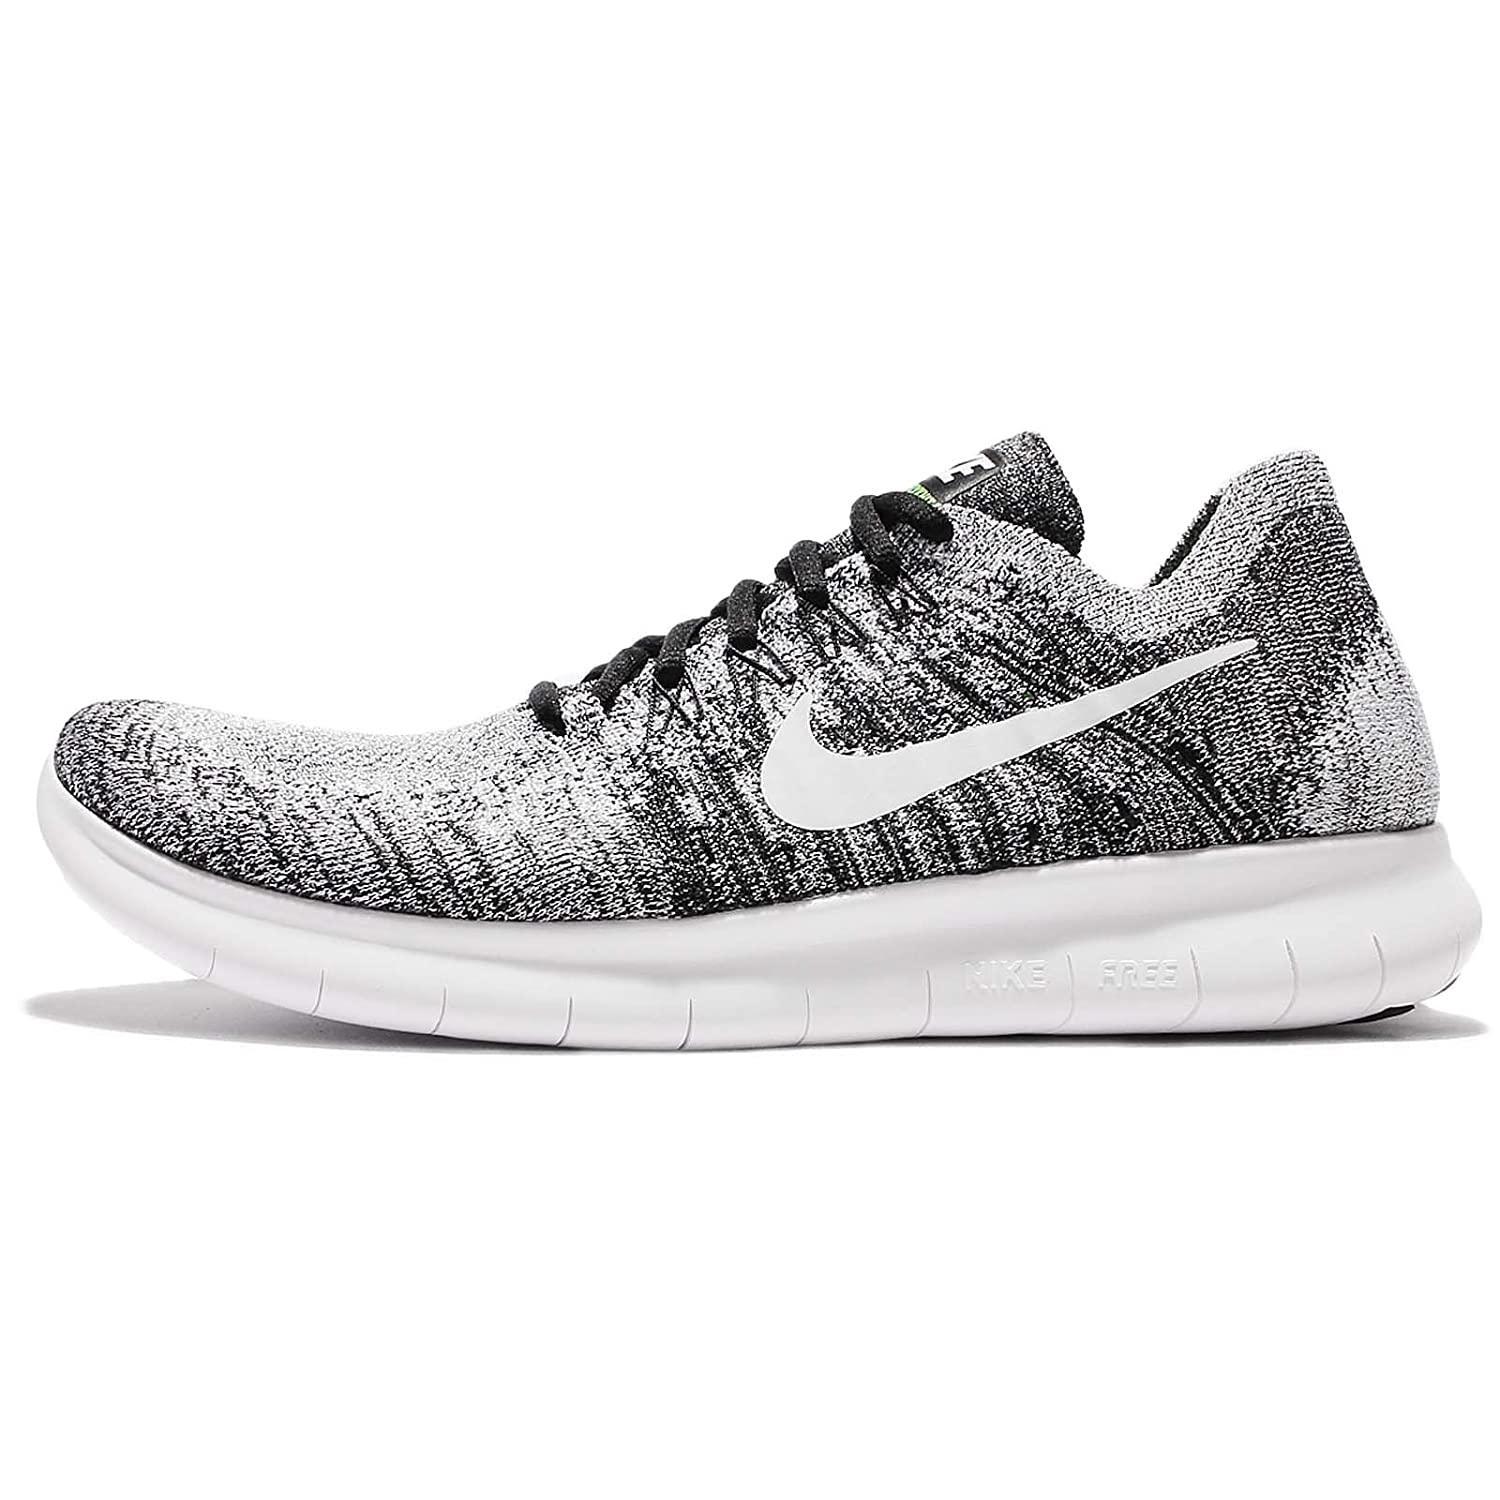 7f89d2771b4 Nike Men s Free Rn Flyknit 2017 Competition Running Shoes  Amazon.co.uk   Shoes   Bags